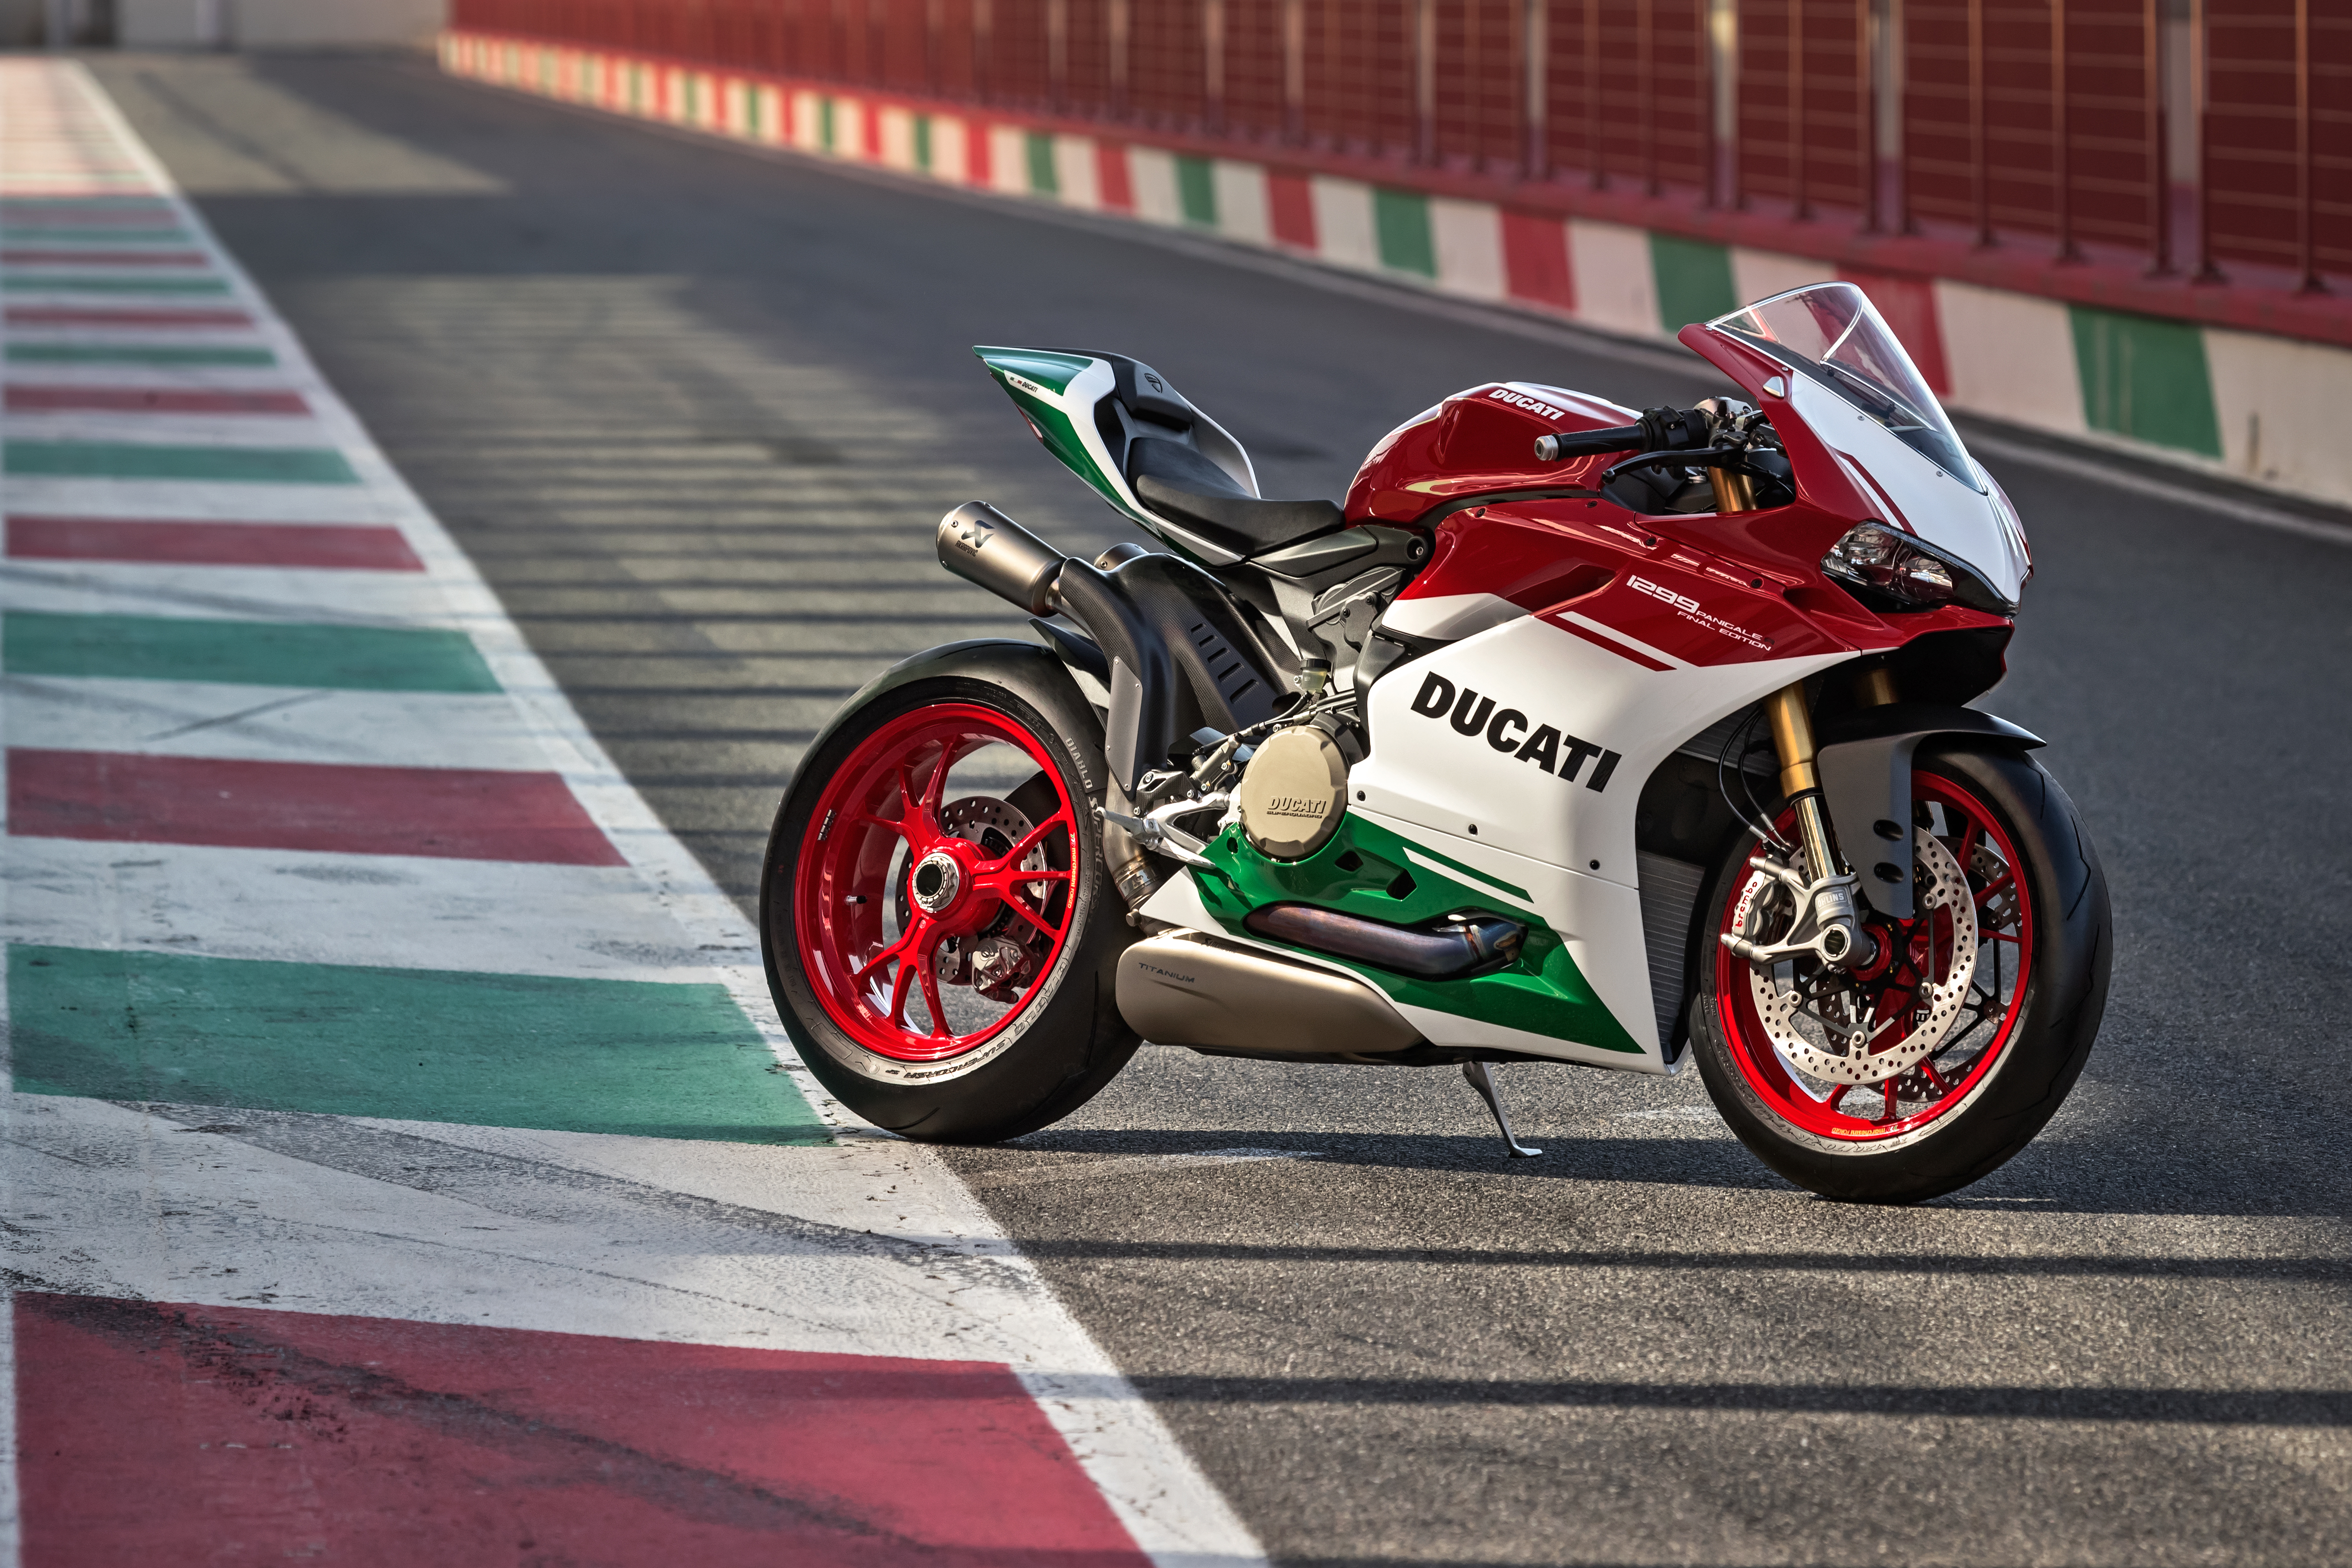 Ducati S 1299 Panigale R Final Edition Is The Exquisite End Of An Era Robb Report